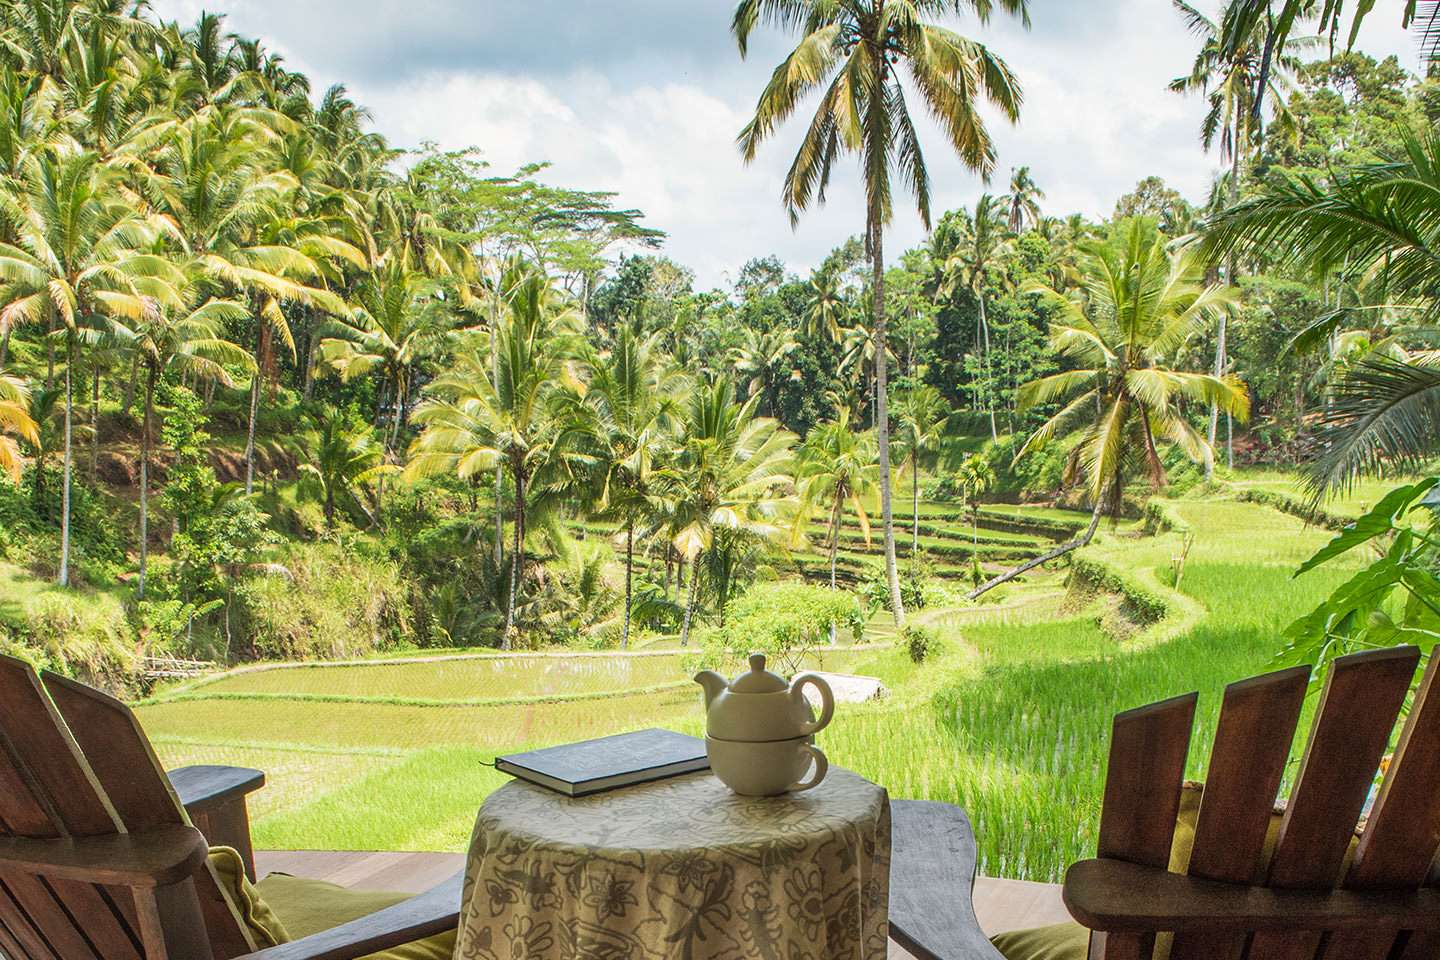 oneworld ayurveda panchakarma center in ubud bali